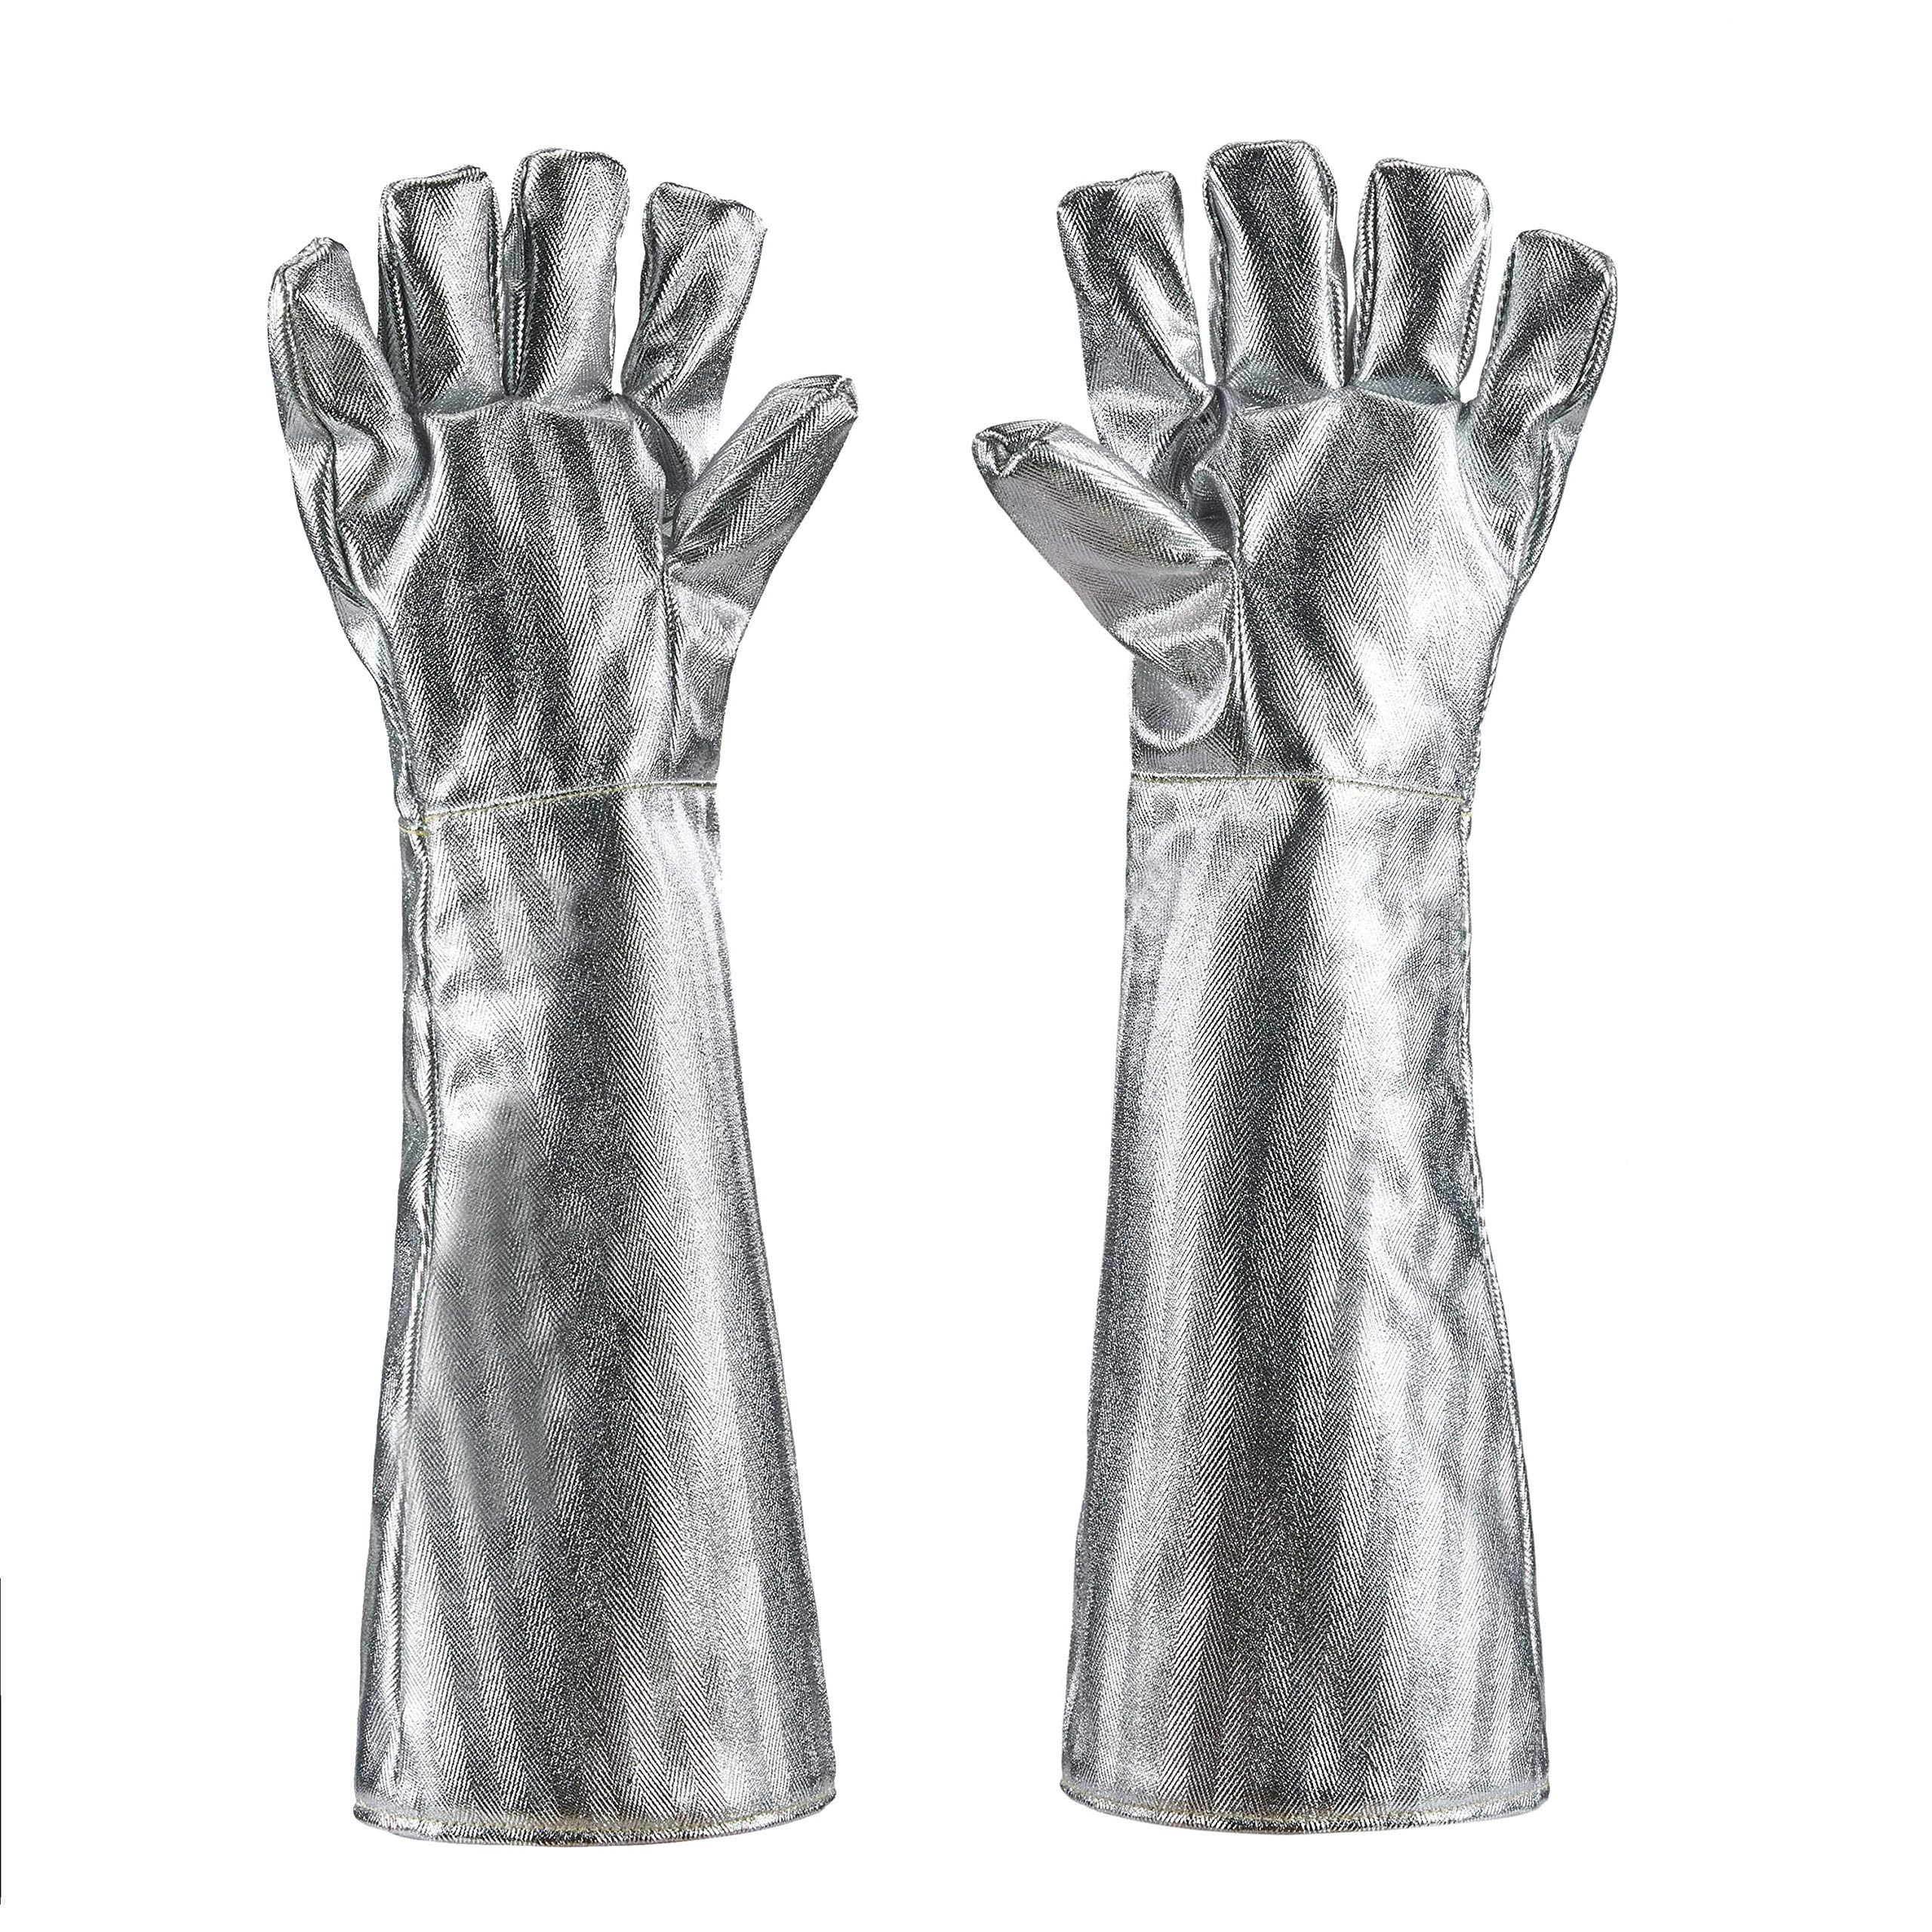 Holulo High Temperature Kevlar Aluminized Glove Heat Resistant Glove Welding Gloves Safety Work Glove (XL-55CM)